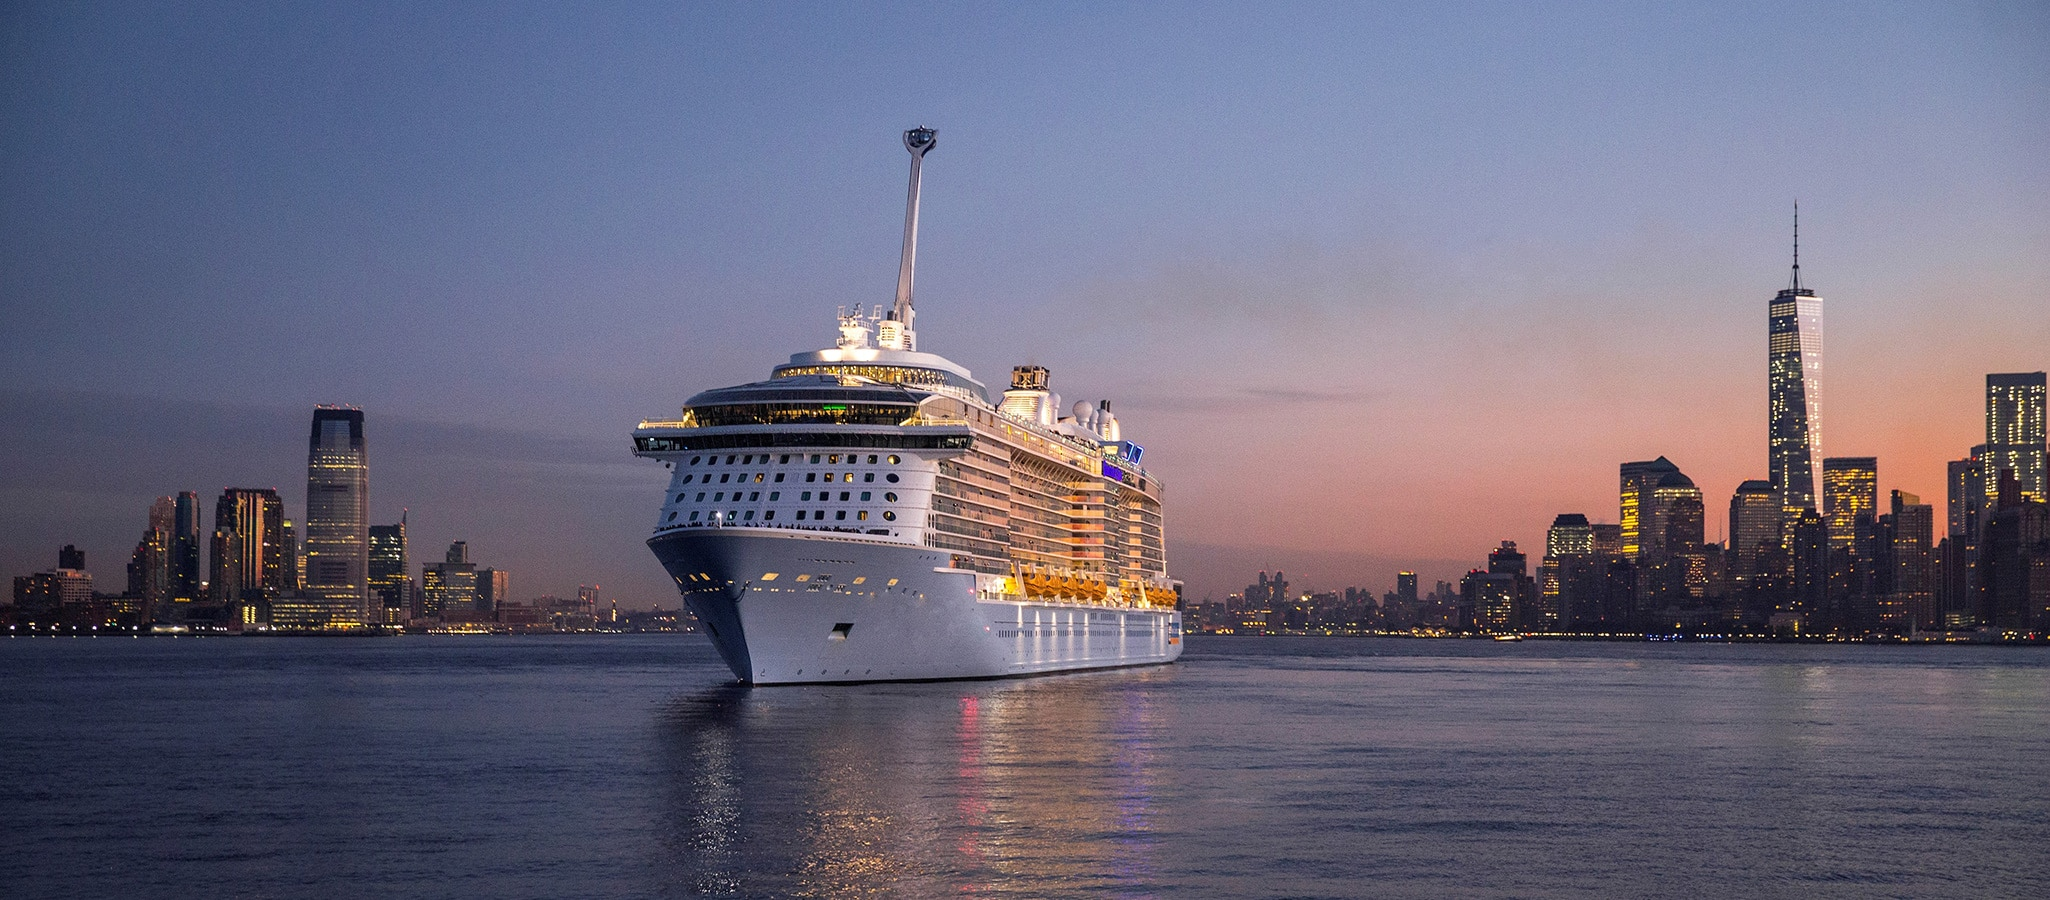 Cruise ships in this category are among the largest in the world. With occupancy in double cabins, they hold up to 6,000 participants for your mega event.